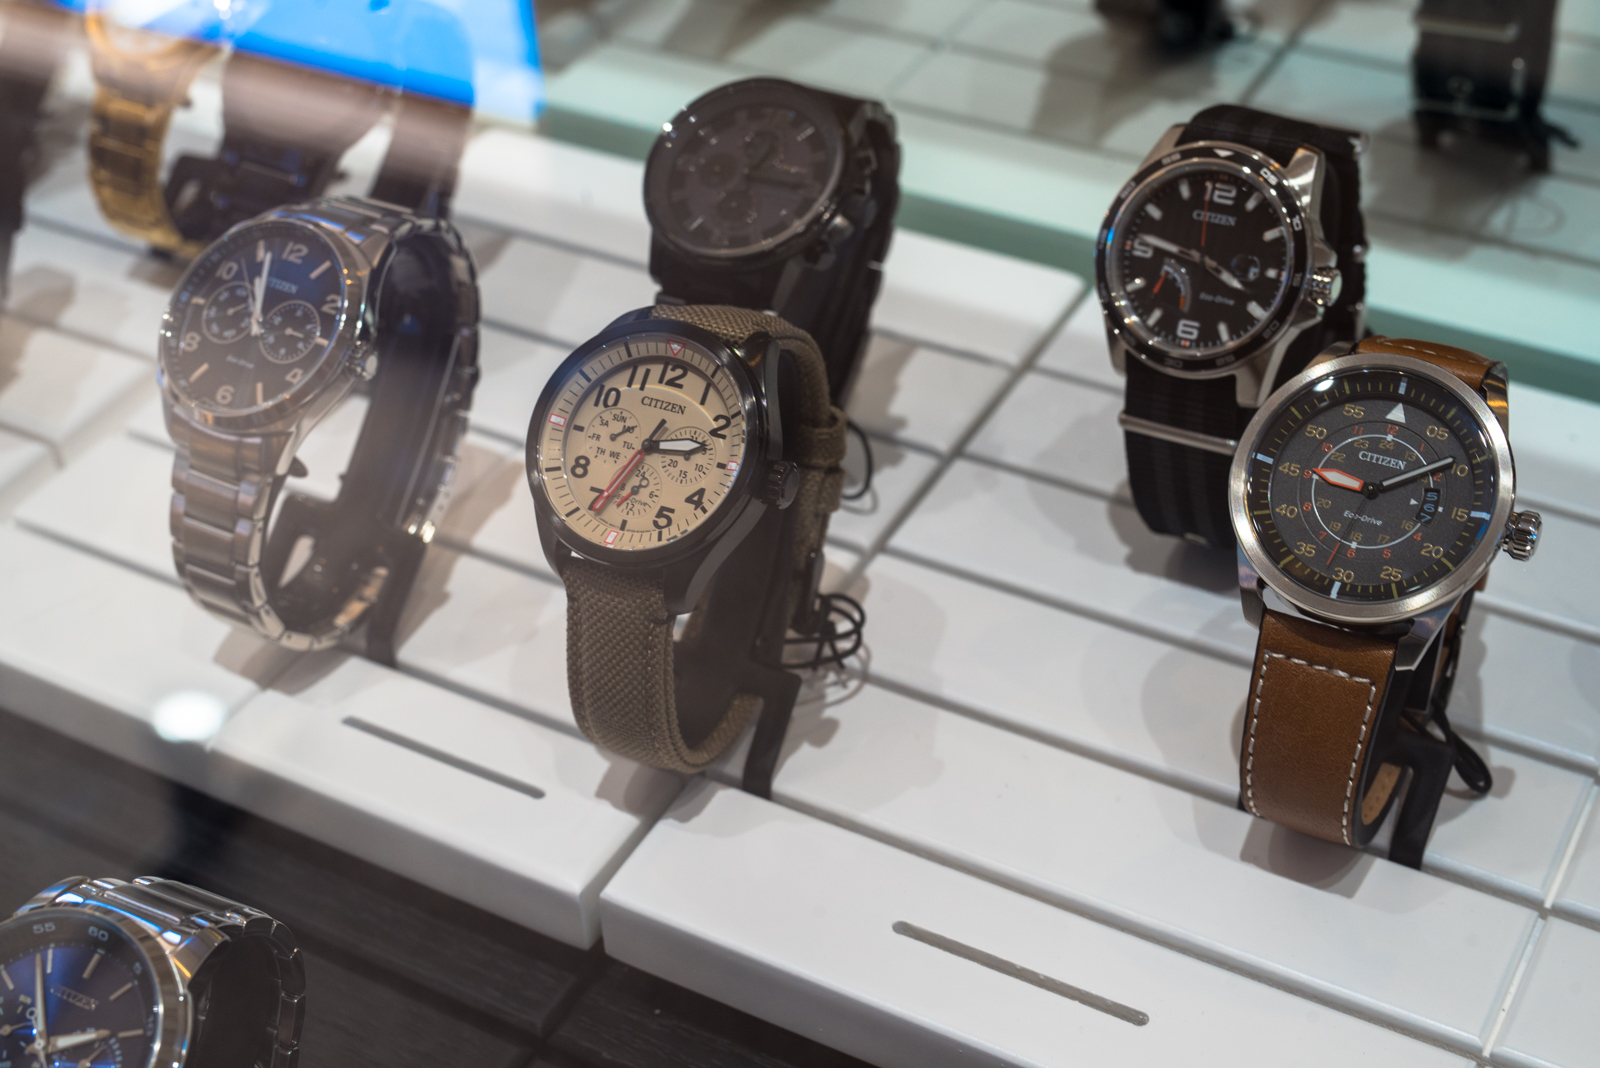 Watches - Indulgence offers a handpicked selection of the latest Citizen Eco-Drive watches. The technology behind the Eco-Drive line harnesses the power of light and converts it into energy which makes these savvy watches run! This one of a kind technology, the eco-friendly science and the value behind these Citizen watches are the reasons why Indulgence offers this line over others like it in-house.